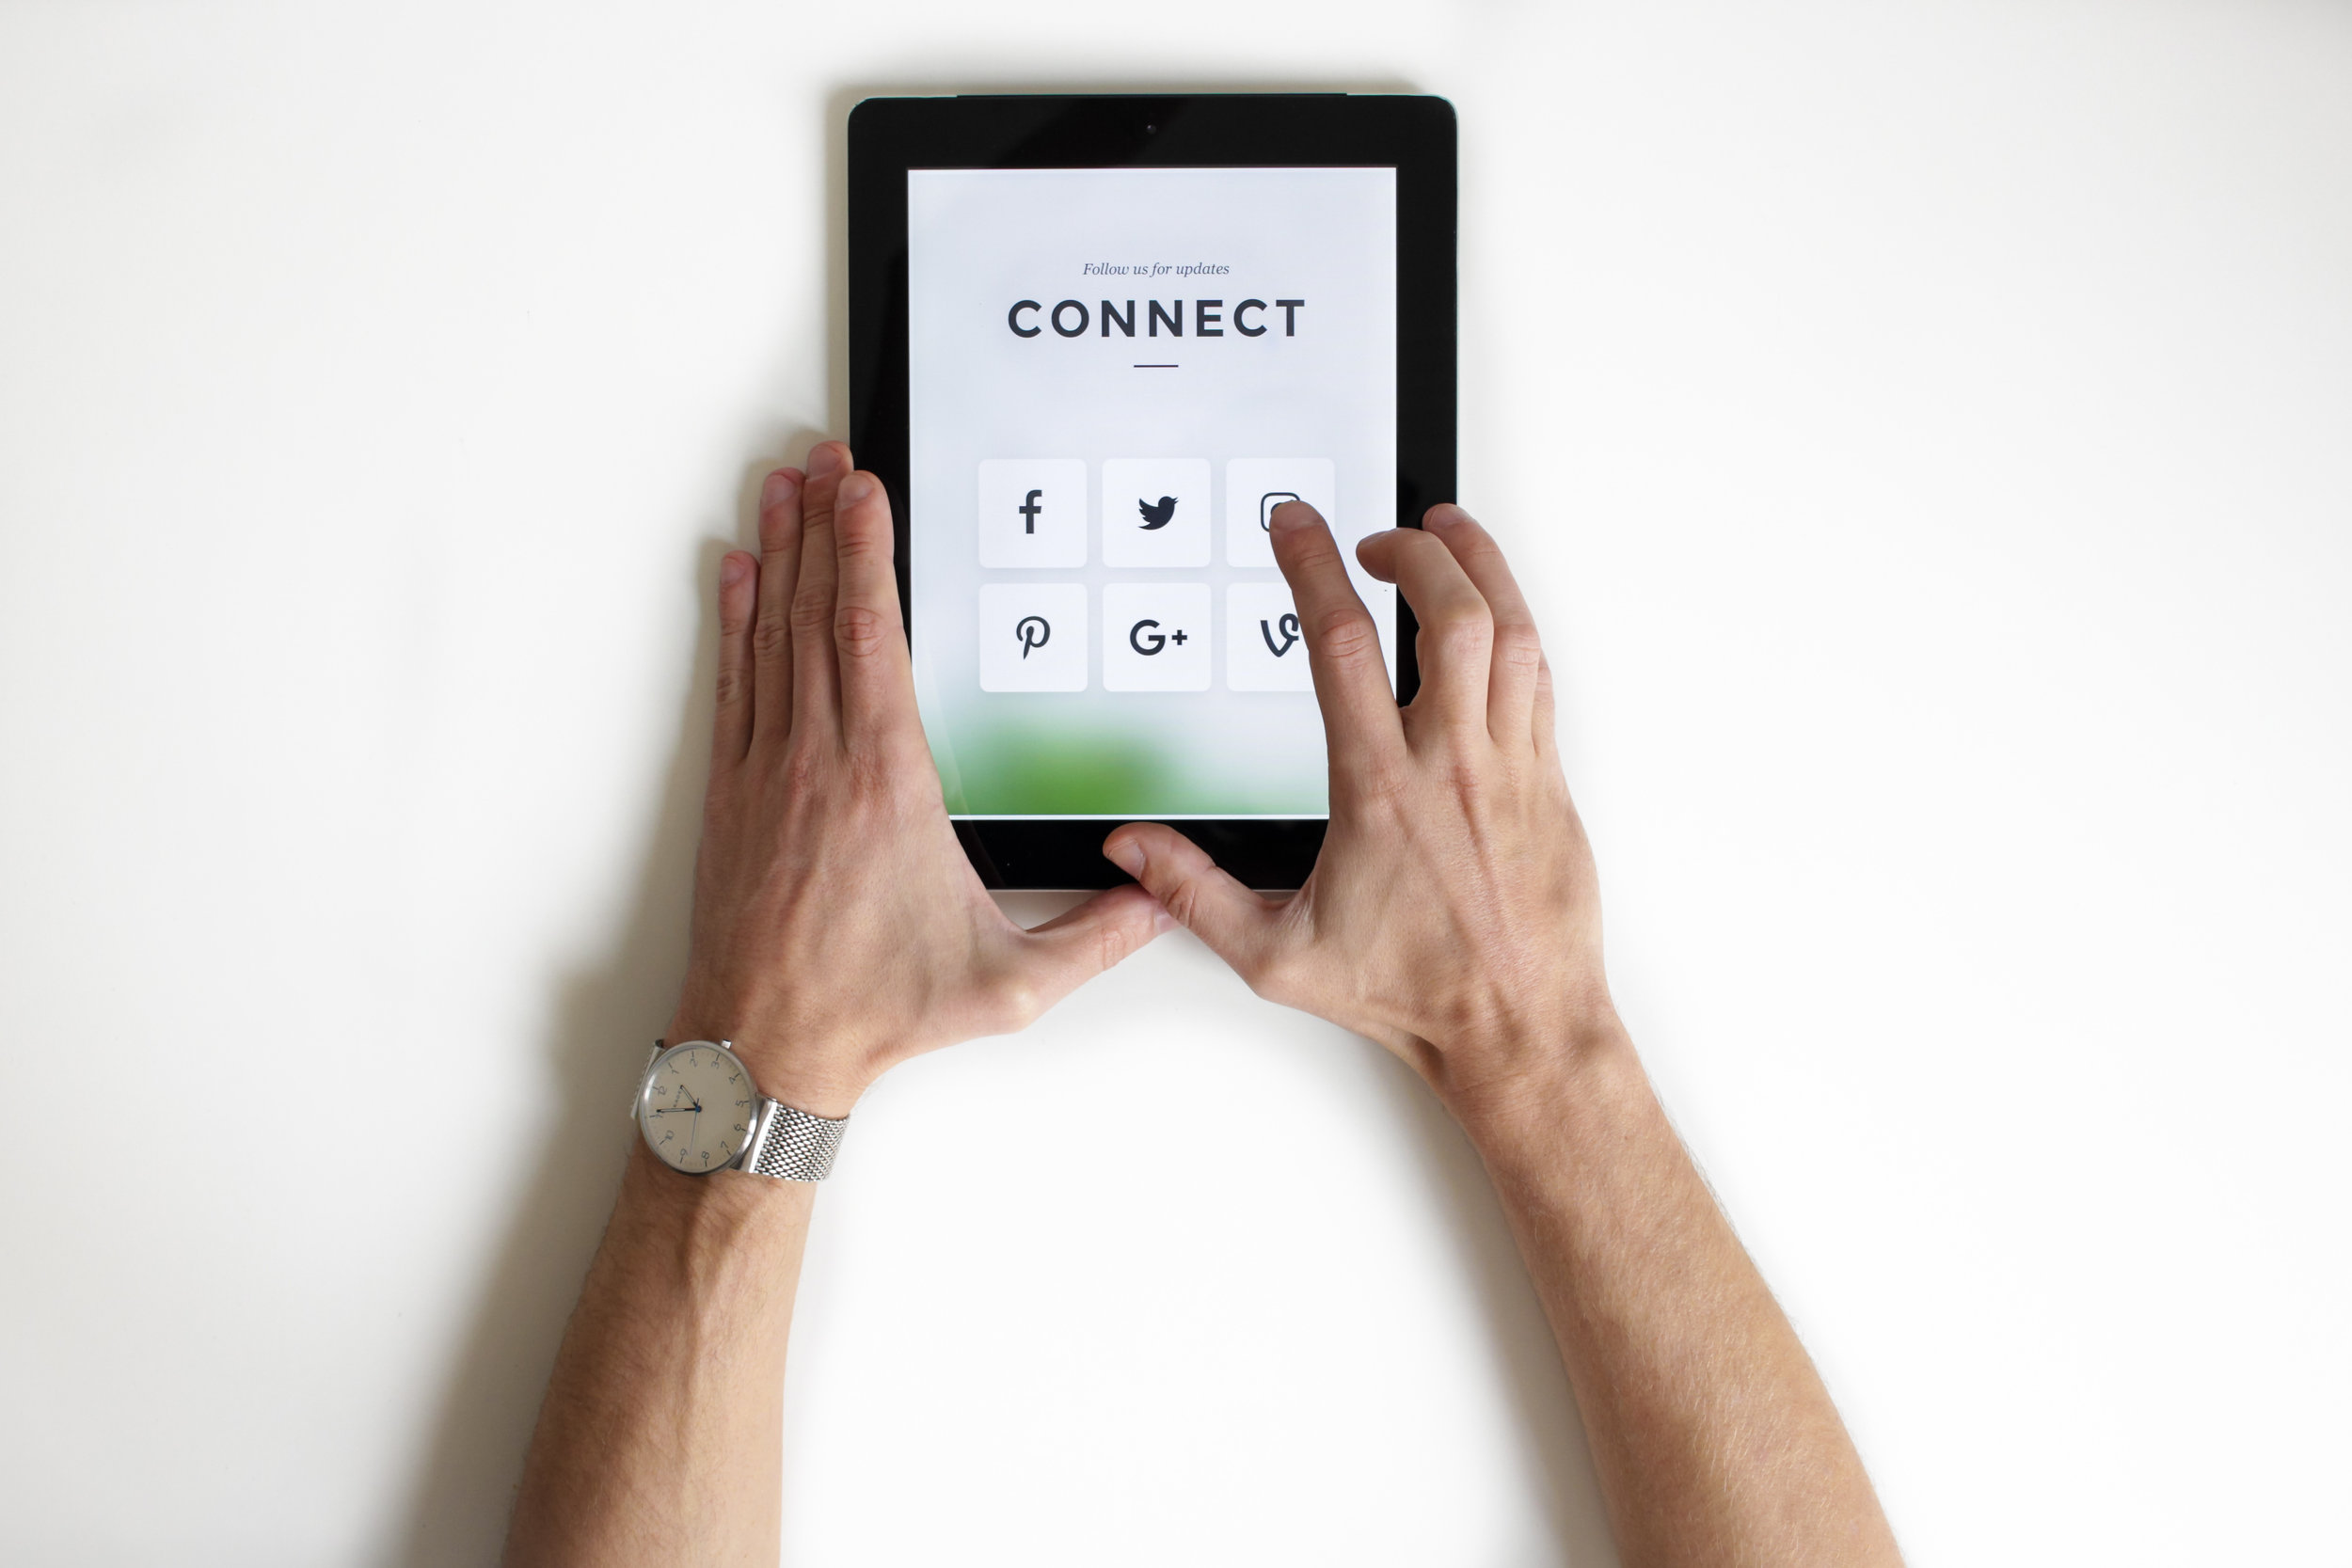 FCG Connects. - Let FCG create or update your online presence. Whether you are looking for daily, weekly, or monthly posts, we will create eye-catching content while sticking to a schedule that suits your needs.